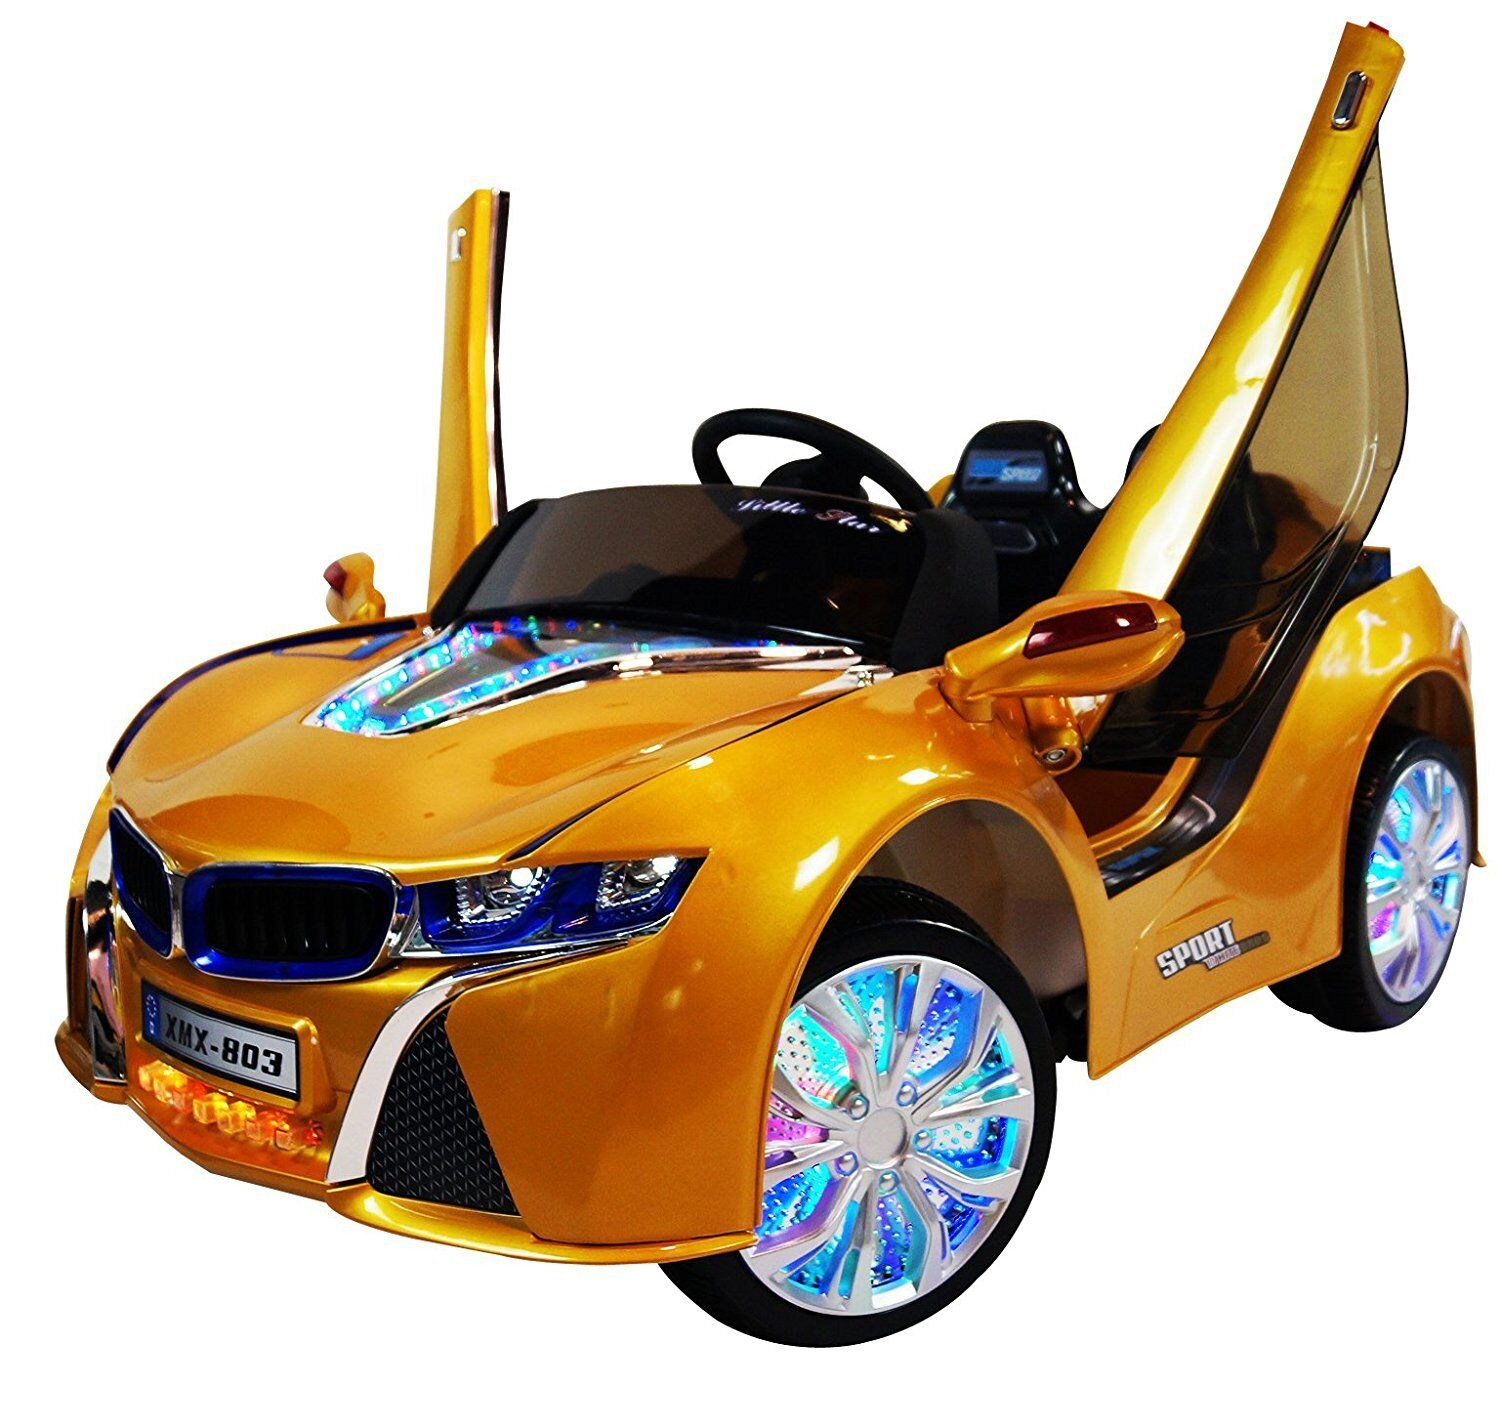 kinder elektroauto kinderauto bmw xmx 803 traumauto lizenziert mp3 fernst gelb ebay. Black Bedroom Furniture Sets. Home Design Ideas